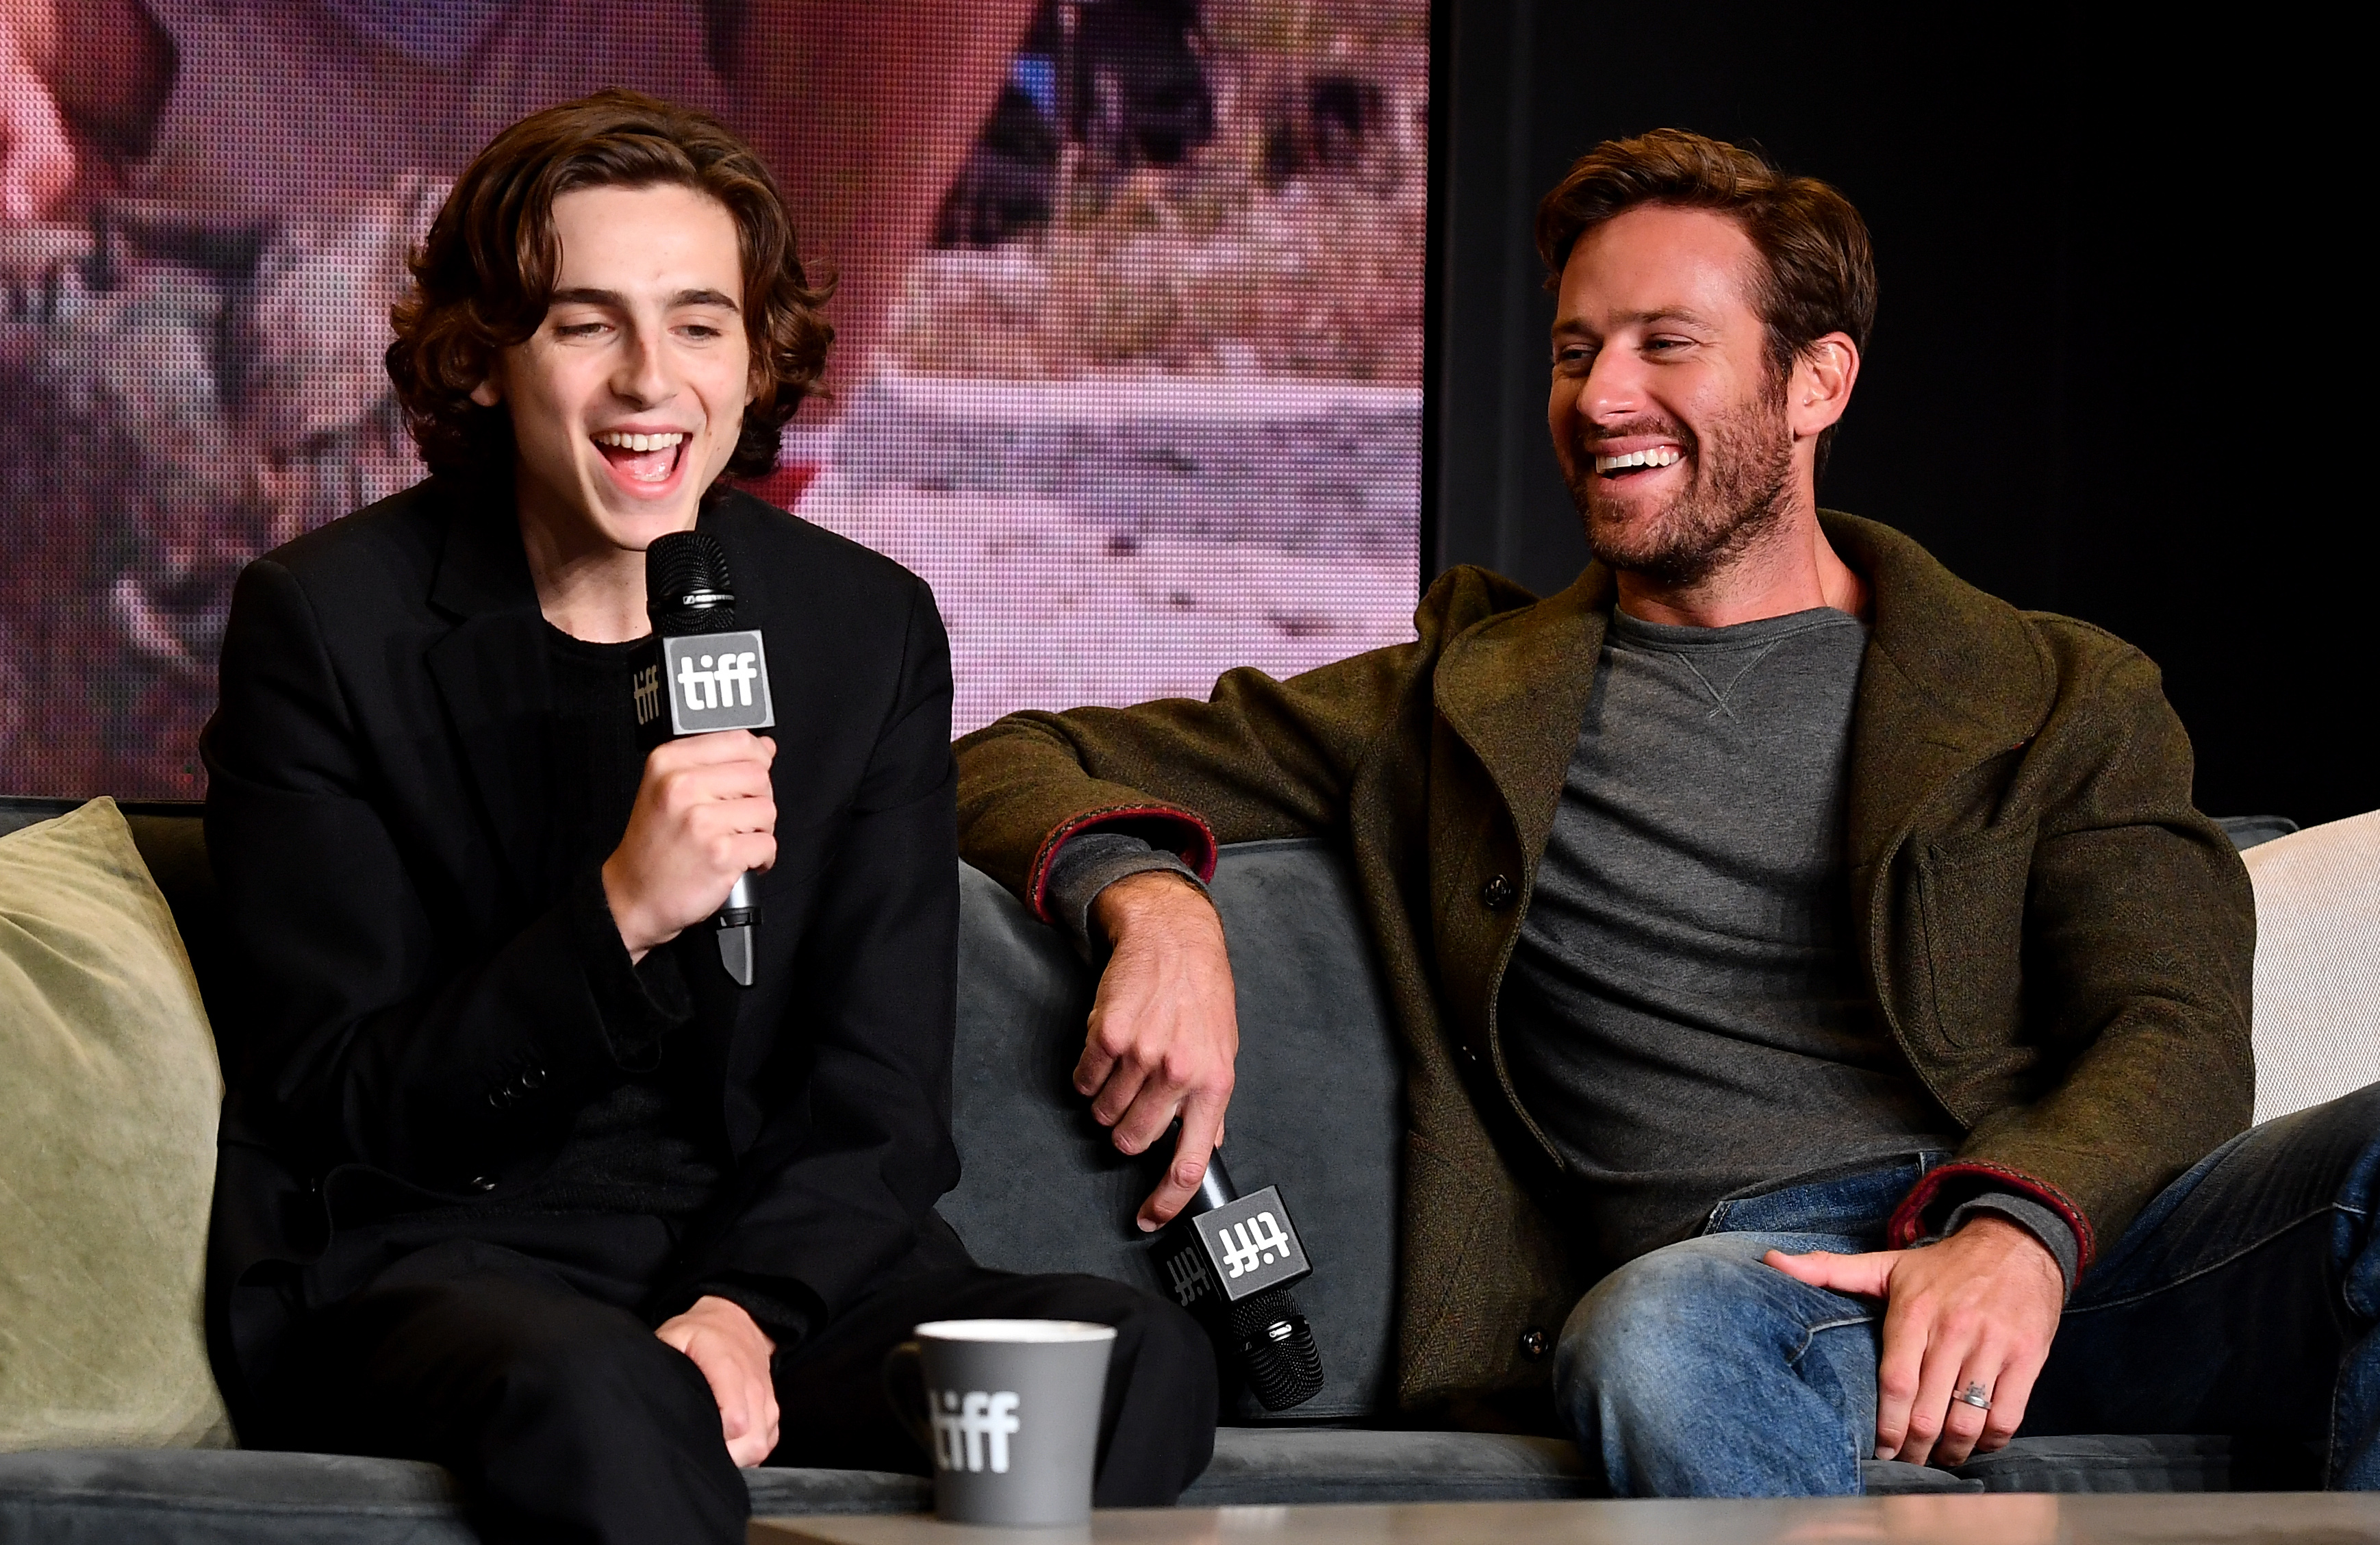 Actors Timothee Chalamet and Armie Hammer attend the  Call Me By Your Name  press conference during the 2017 Toronto International Film Festival at TIFF Bell Lightbox on September 8, 2017 in Toronto, Canada.